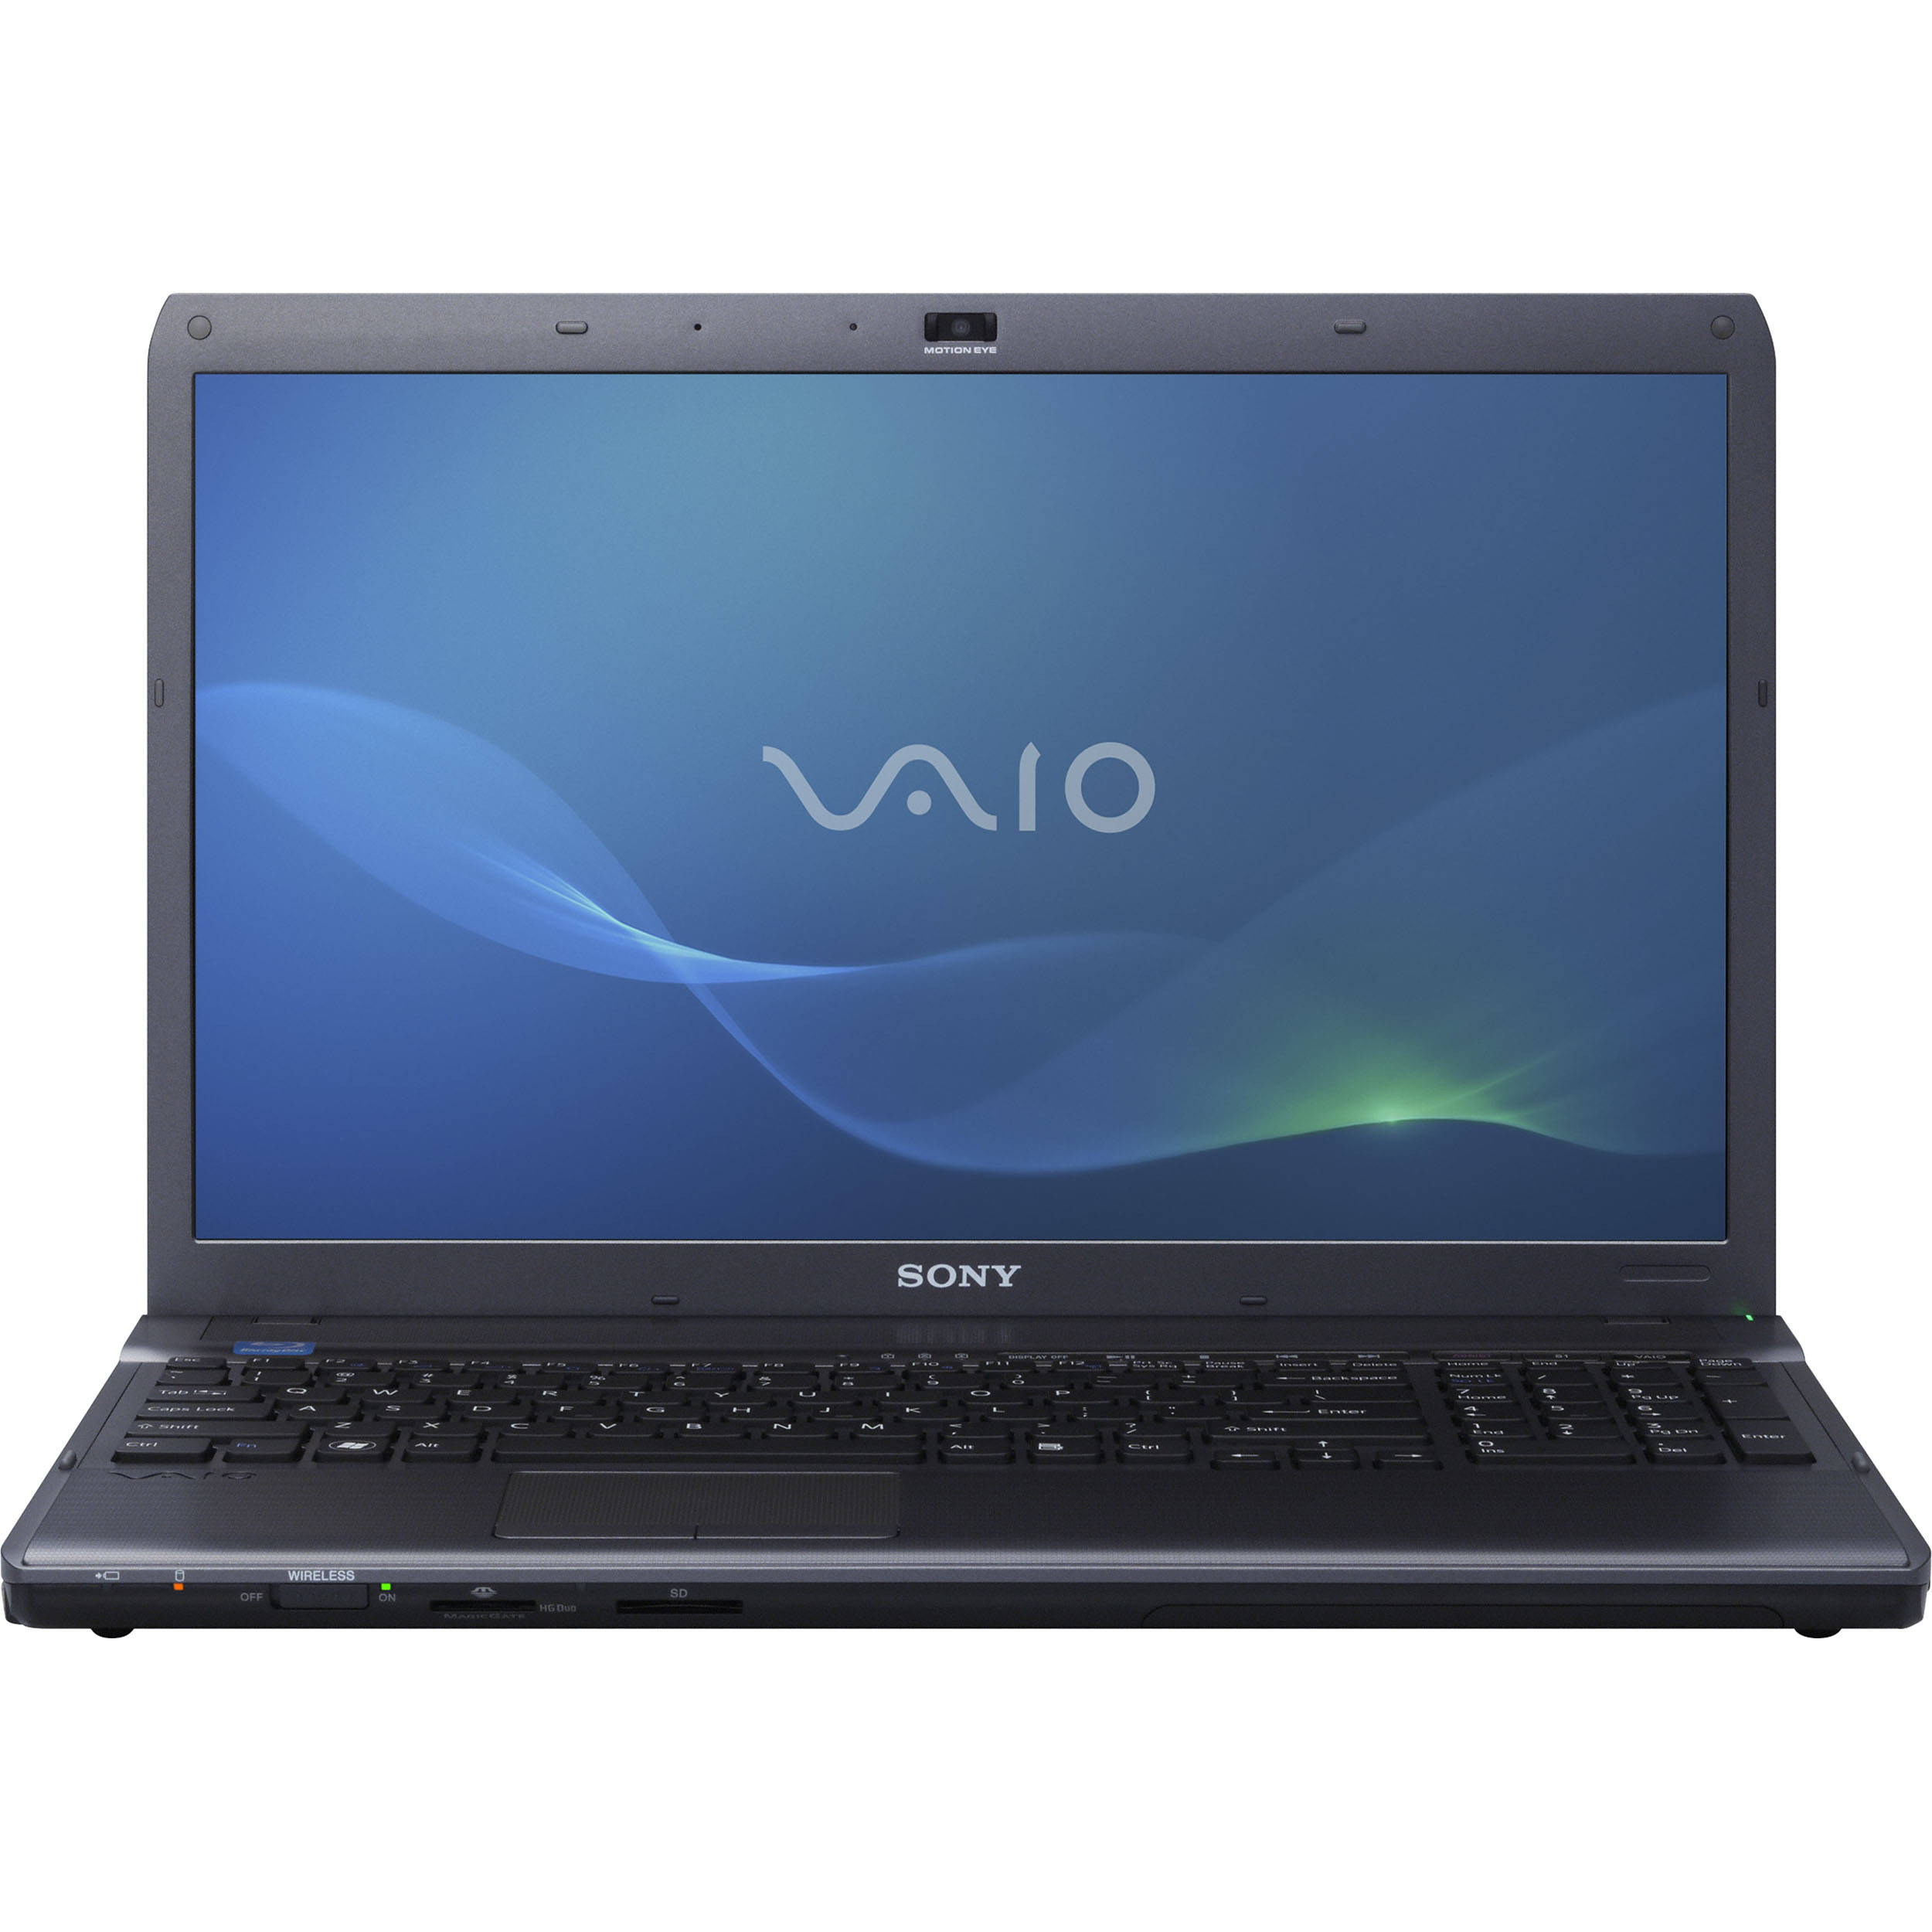 Sony Vaio VPCF127FX/B Alps Pointing Drivers Windows 7